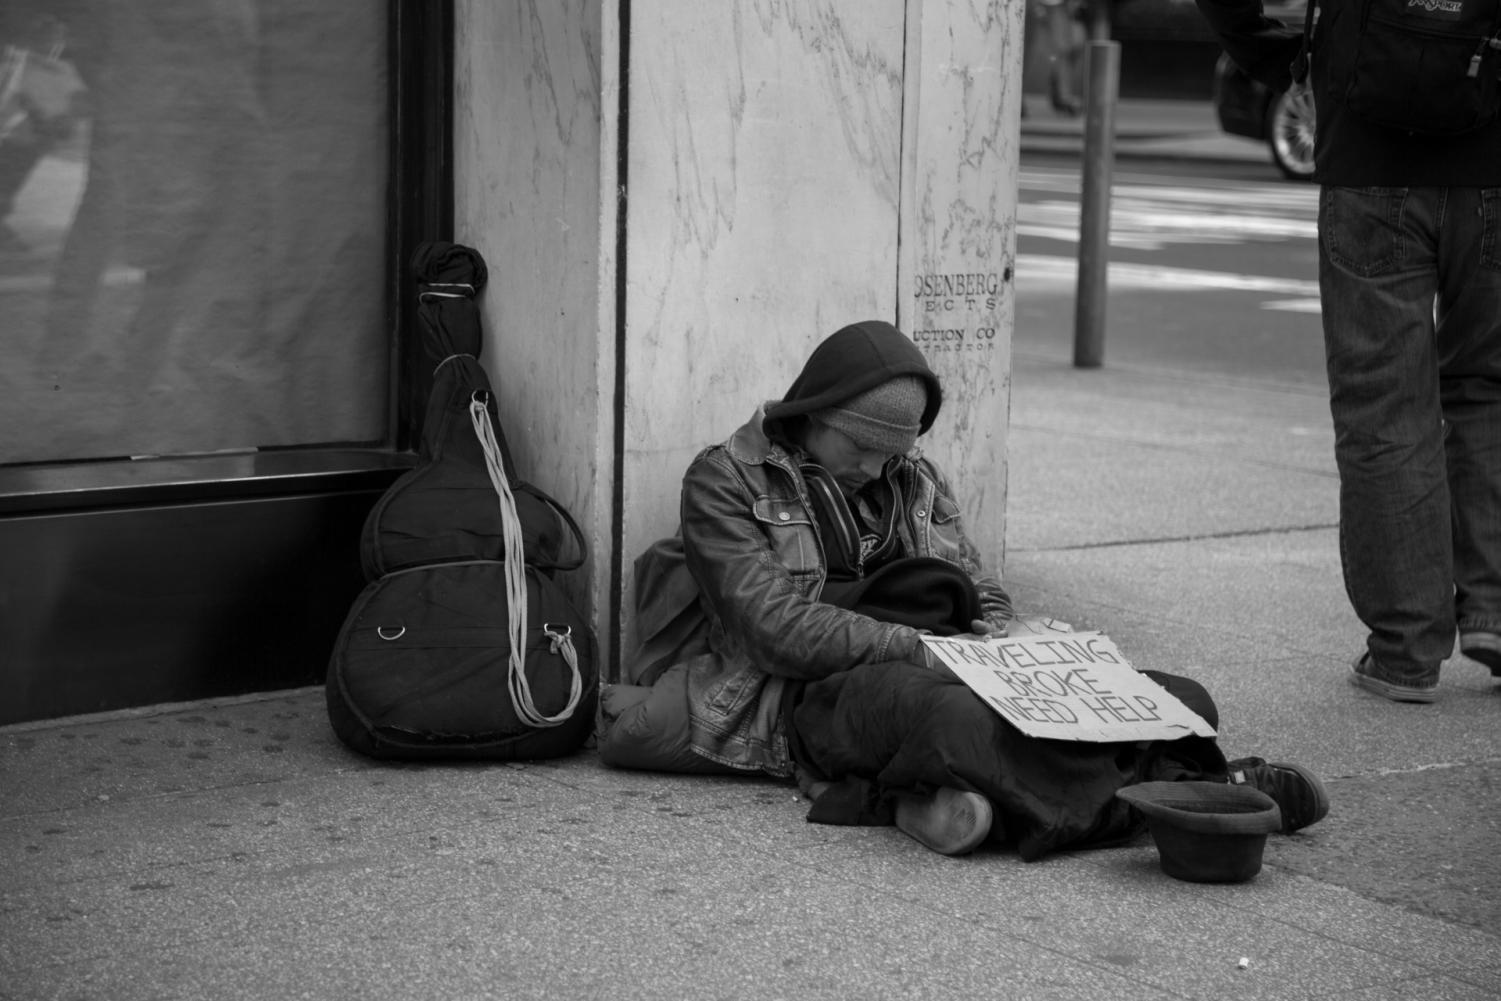 Homeless man sitting on street with sign.